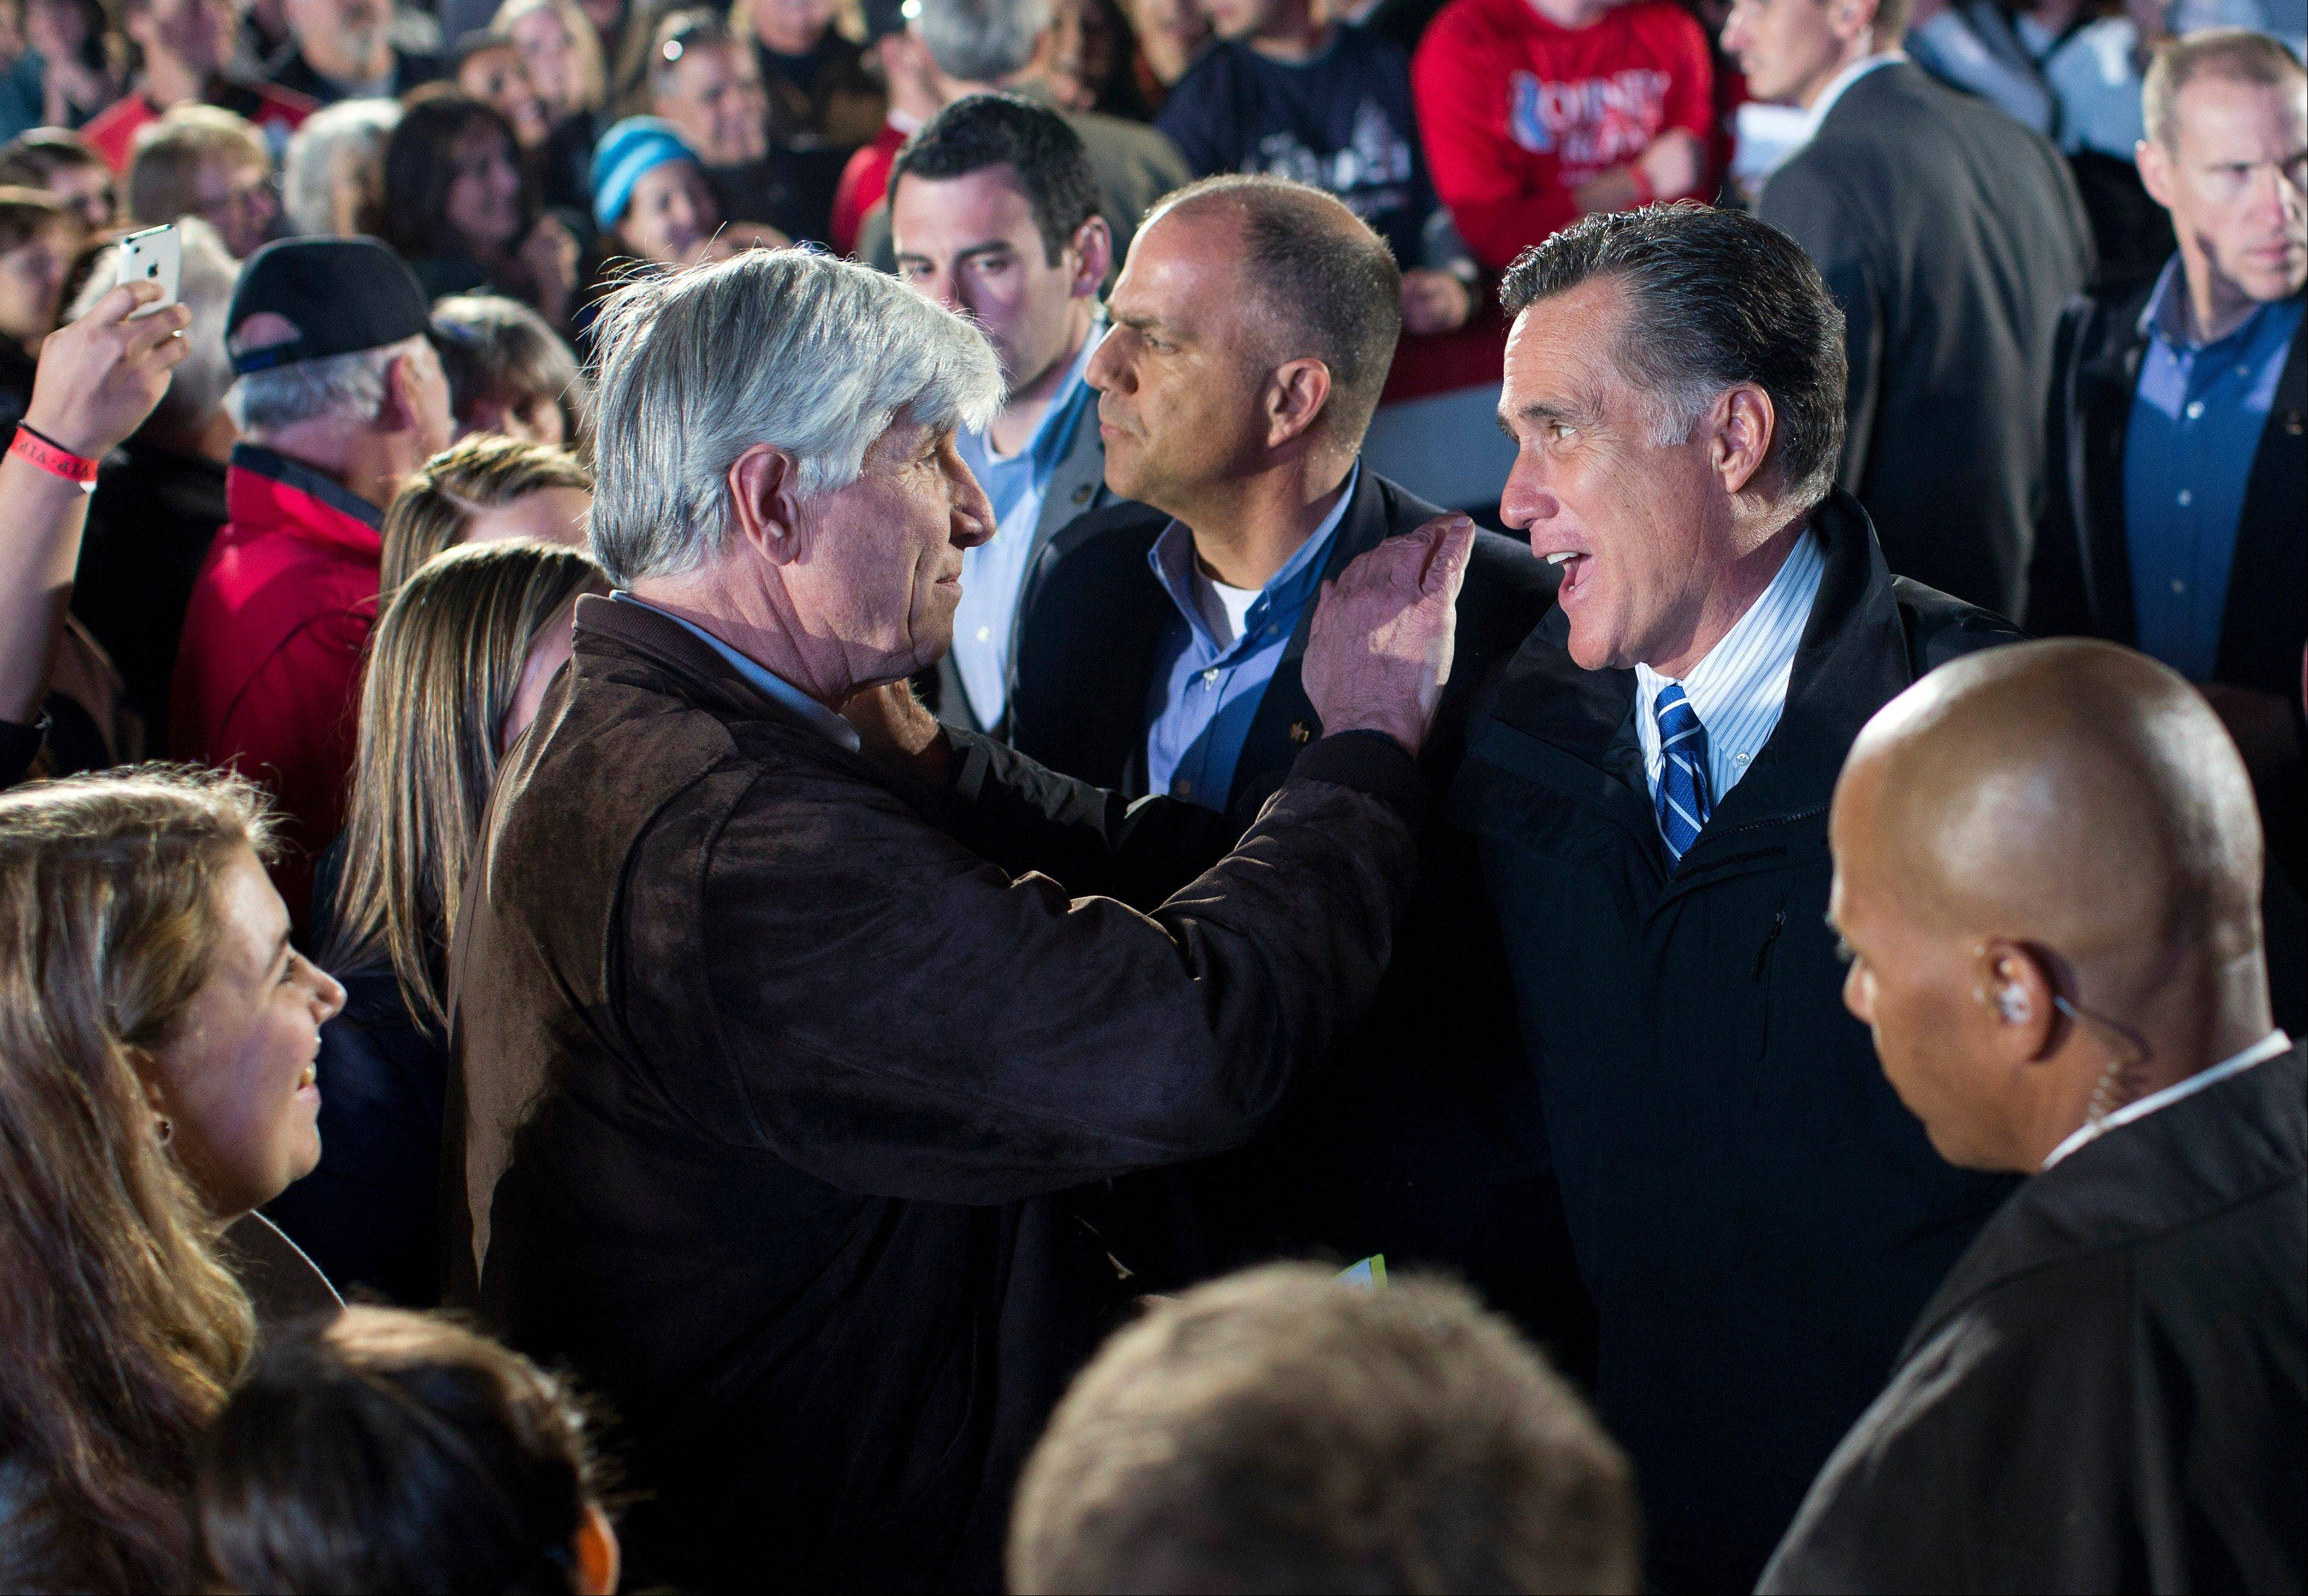 Republican presidential candidate, former Massachusetts Gov. Mitt Romney talks with supporters during a campaign stop on Tuesday, Oct. 9, 2012 in Cuyahoga Falls, Ohio.